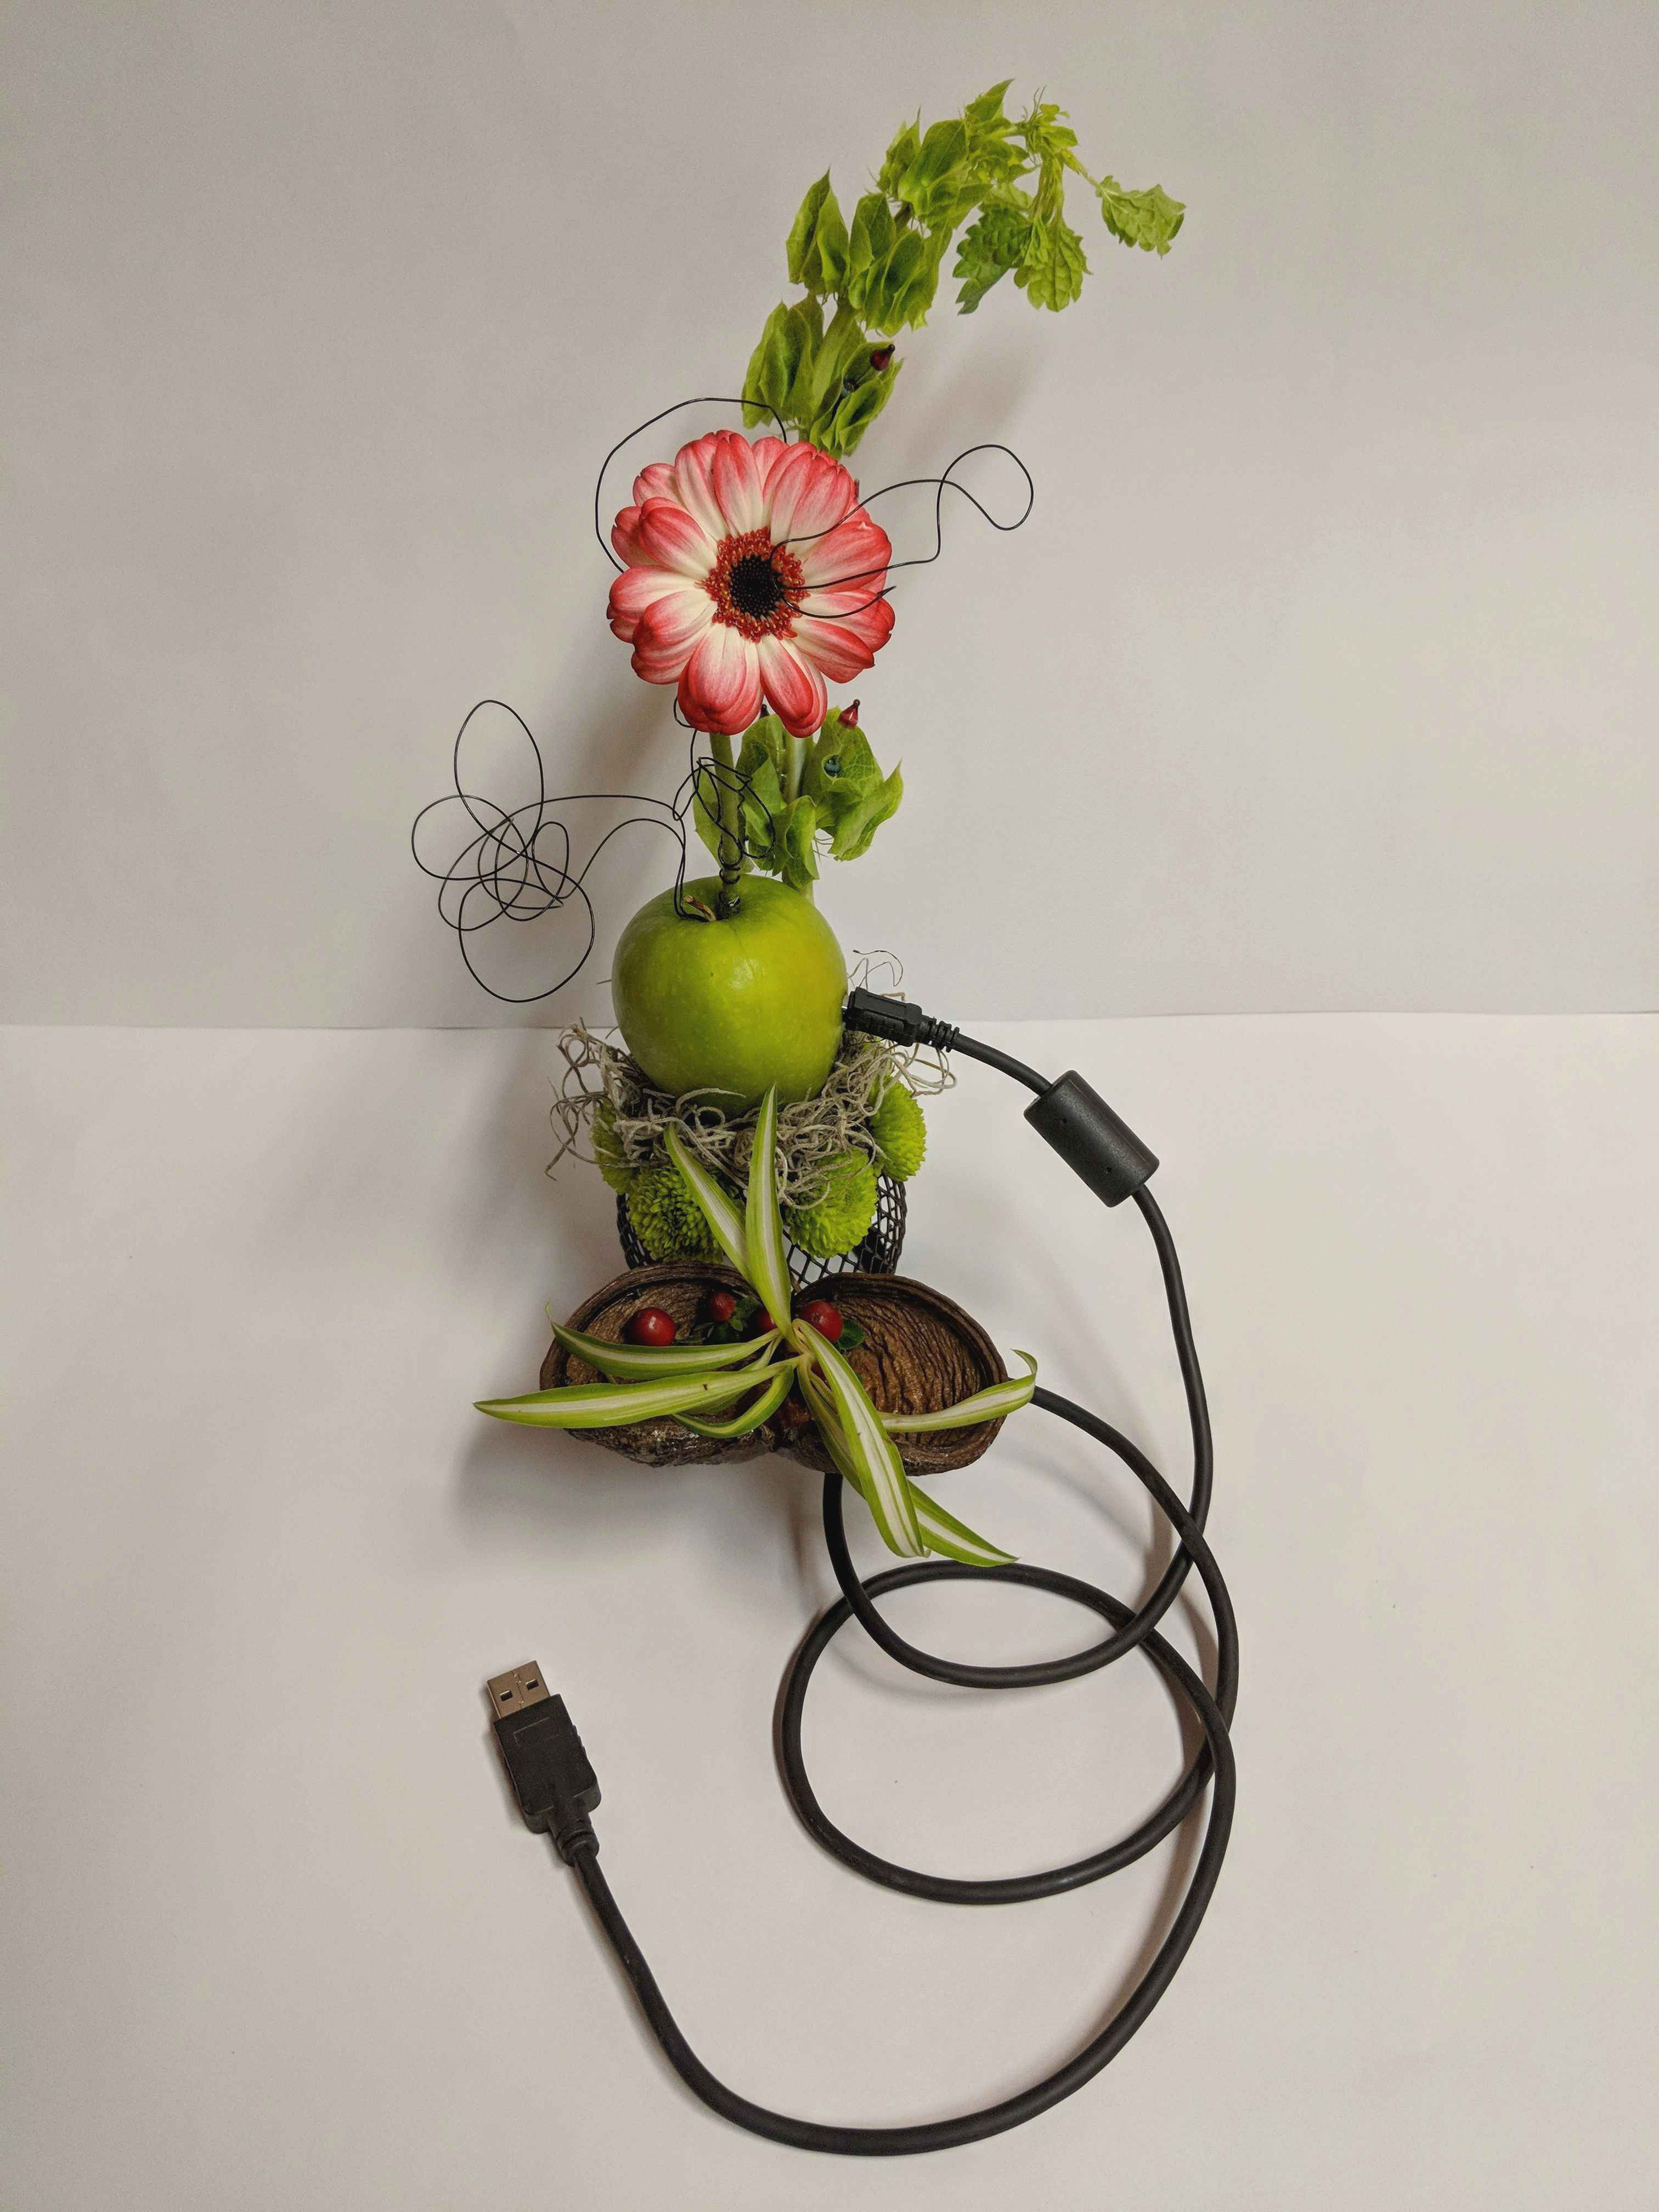 Metal Vases at Hobby Lobby Of Awesome Hobby Lobby Artificial Plants Plant Directory Throughout 38 Best Flower Garland Image Inspiration Silk Flowers Hobby Lobby